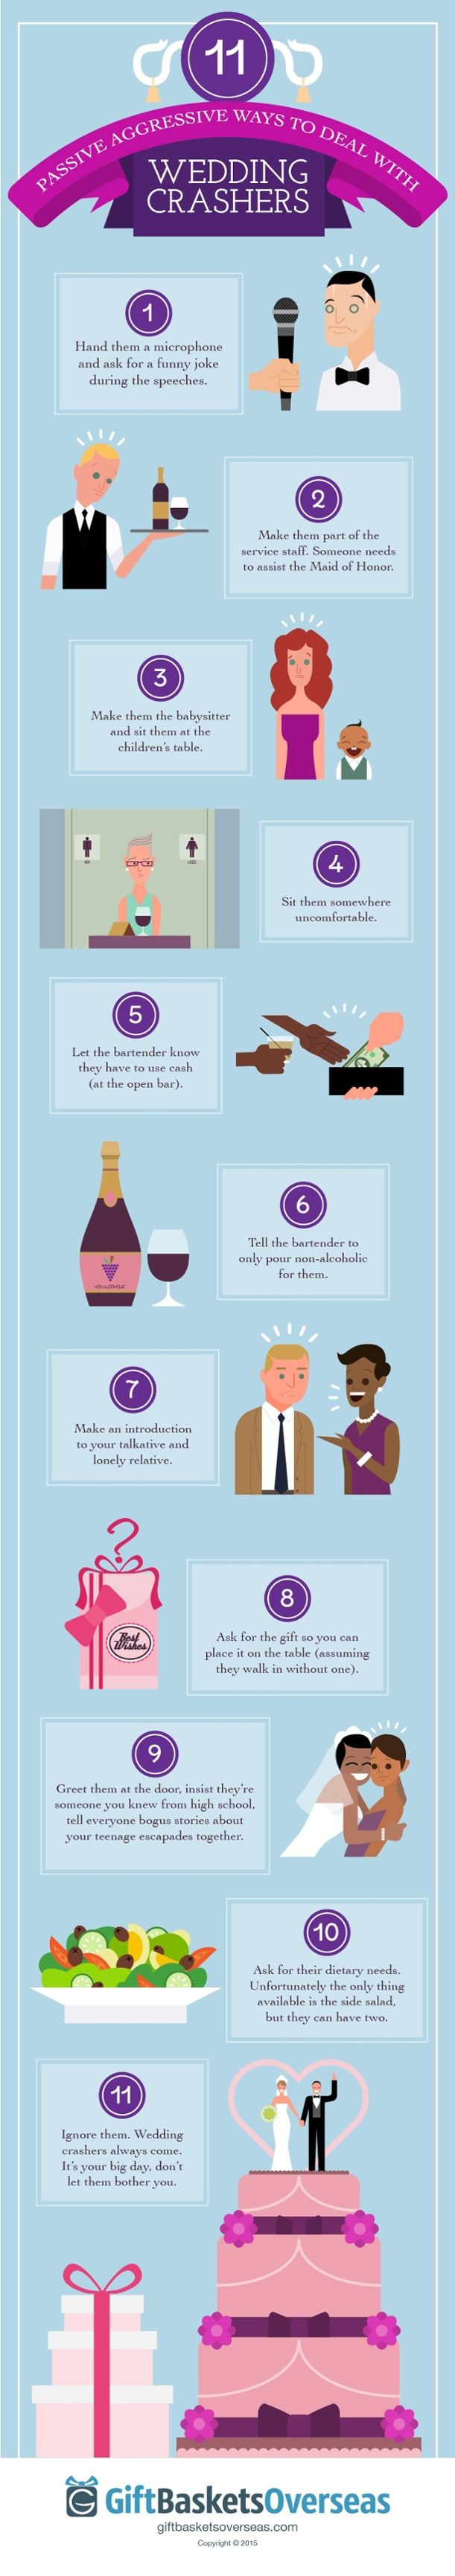 11 Pive Aggressive Ways To Deal With Wedding Crashers